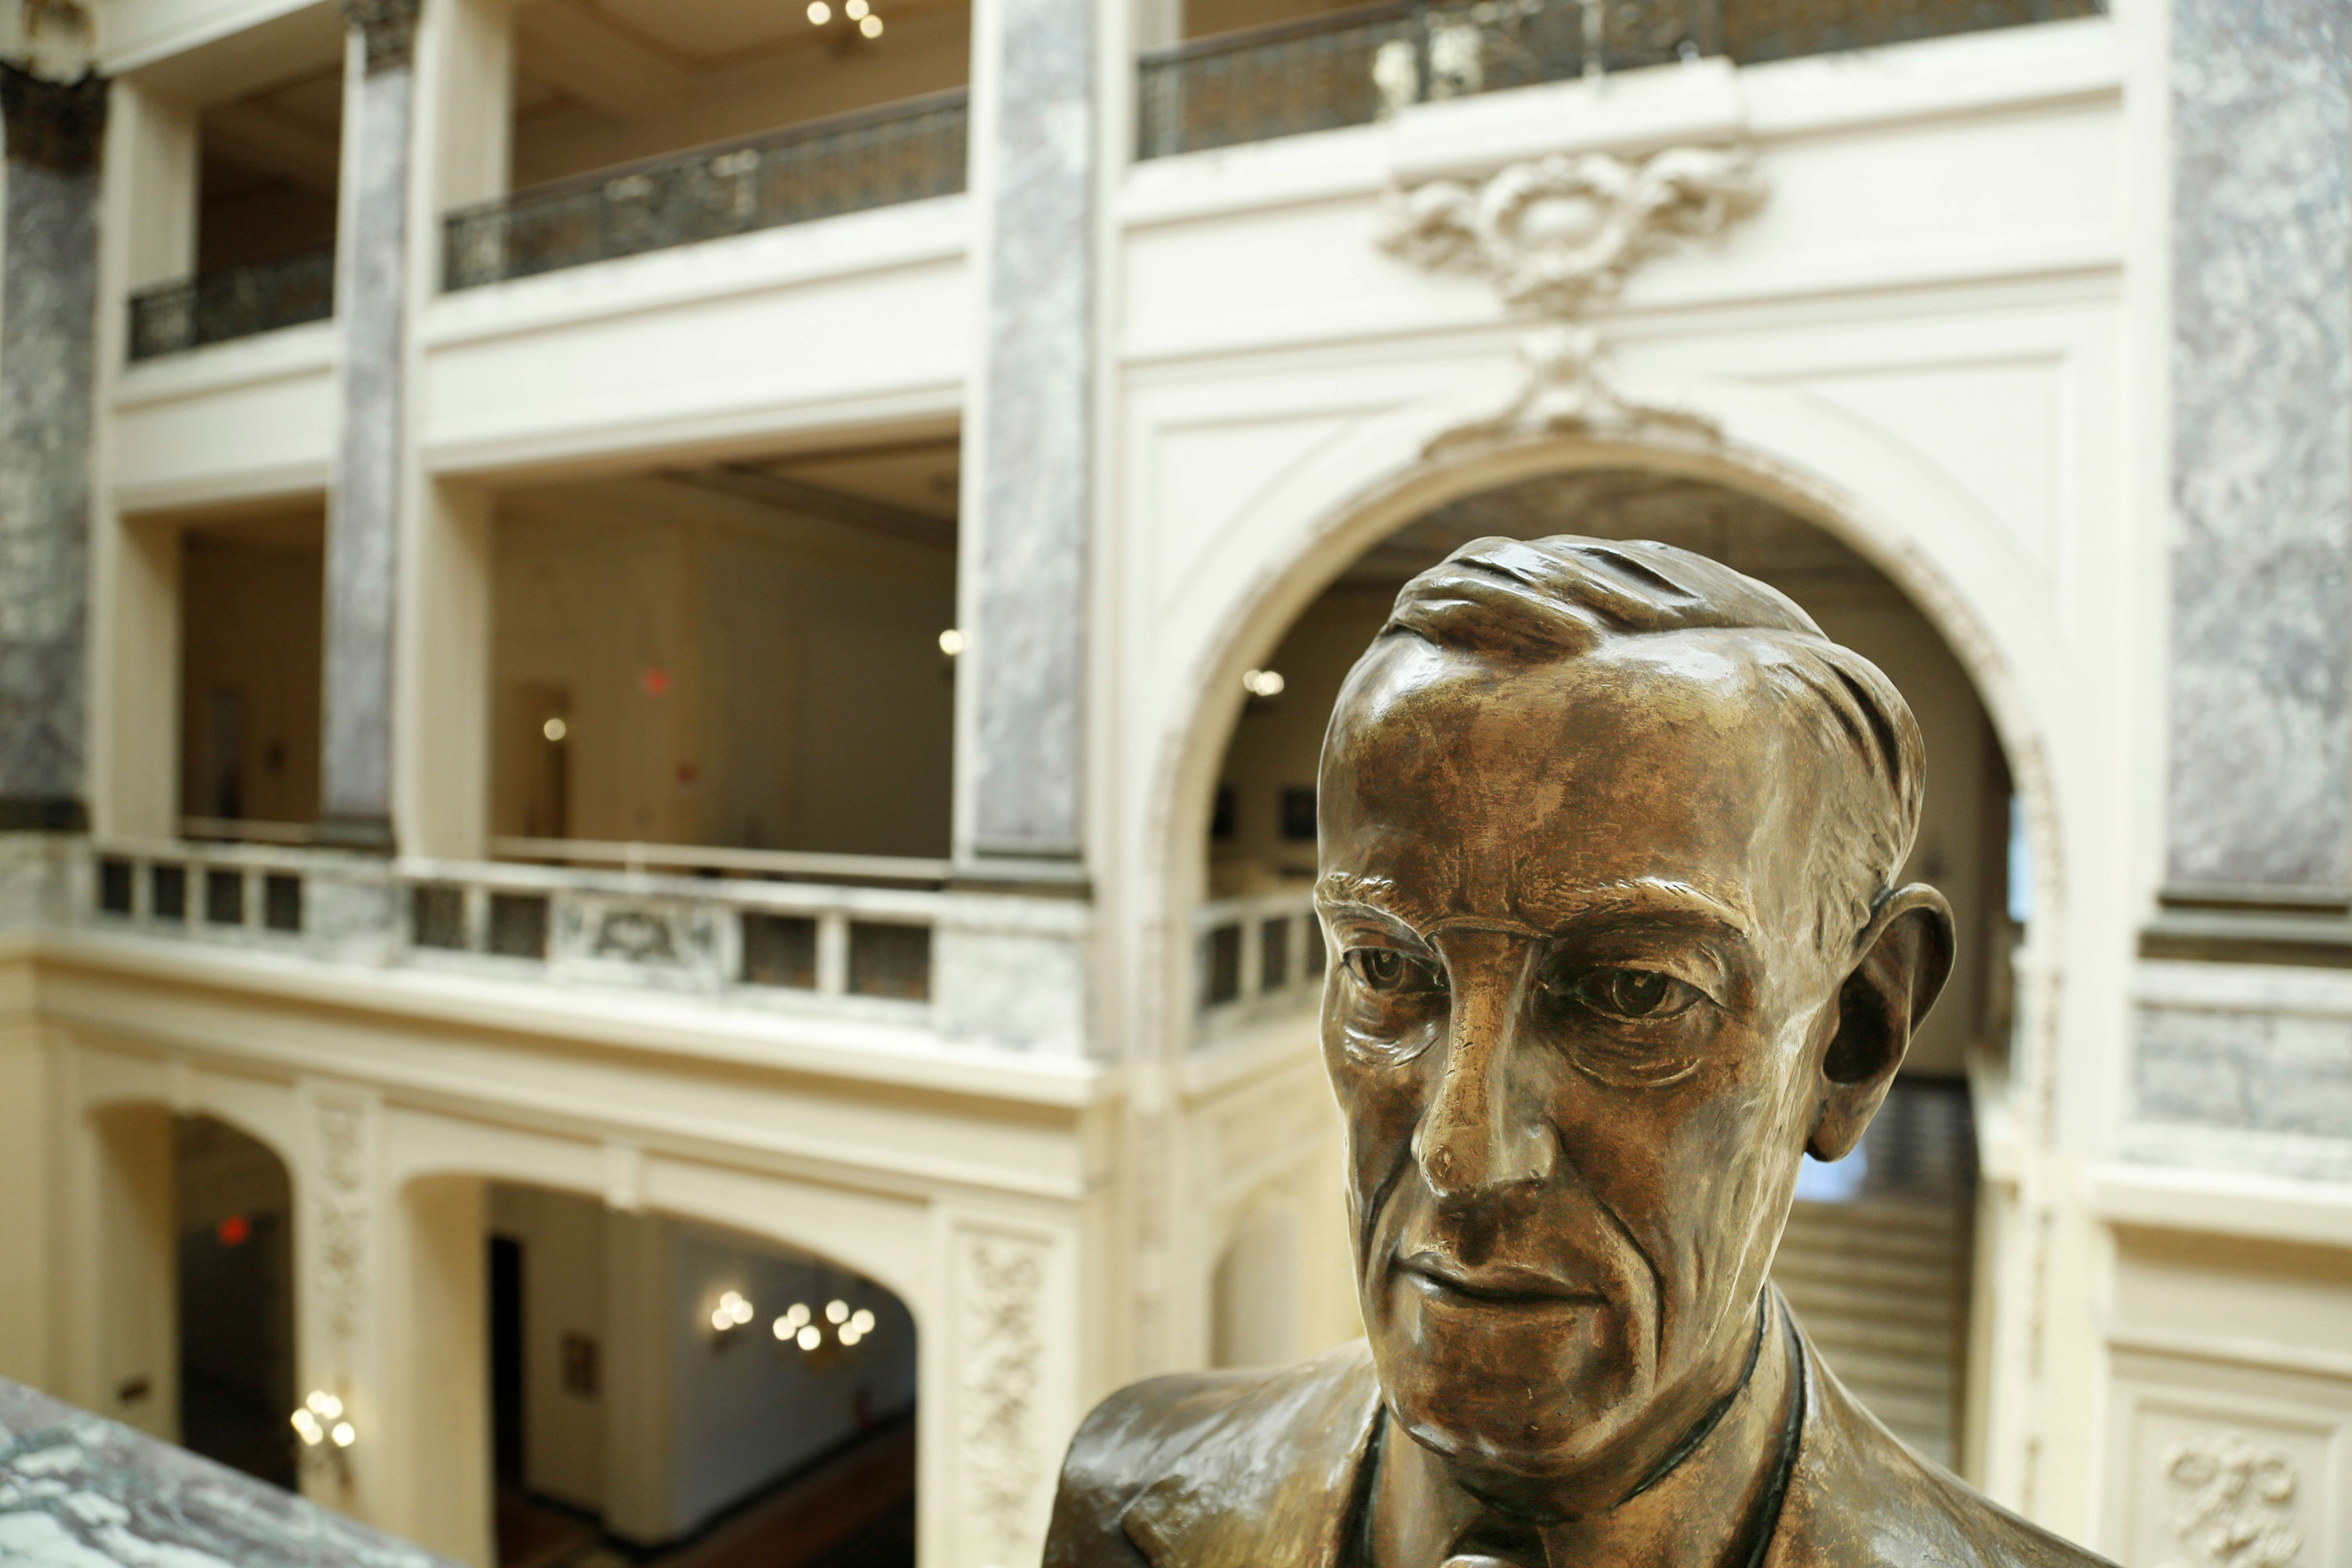 A bust of Woodrow Wilson is displayed in Woodrow Wilson Hall at Monmouth University in 2017.